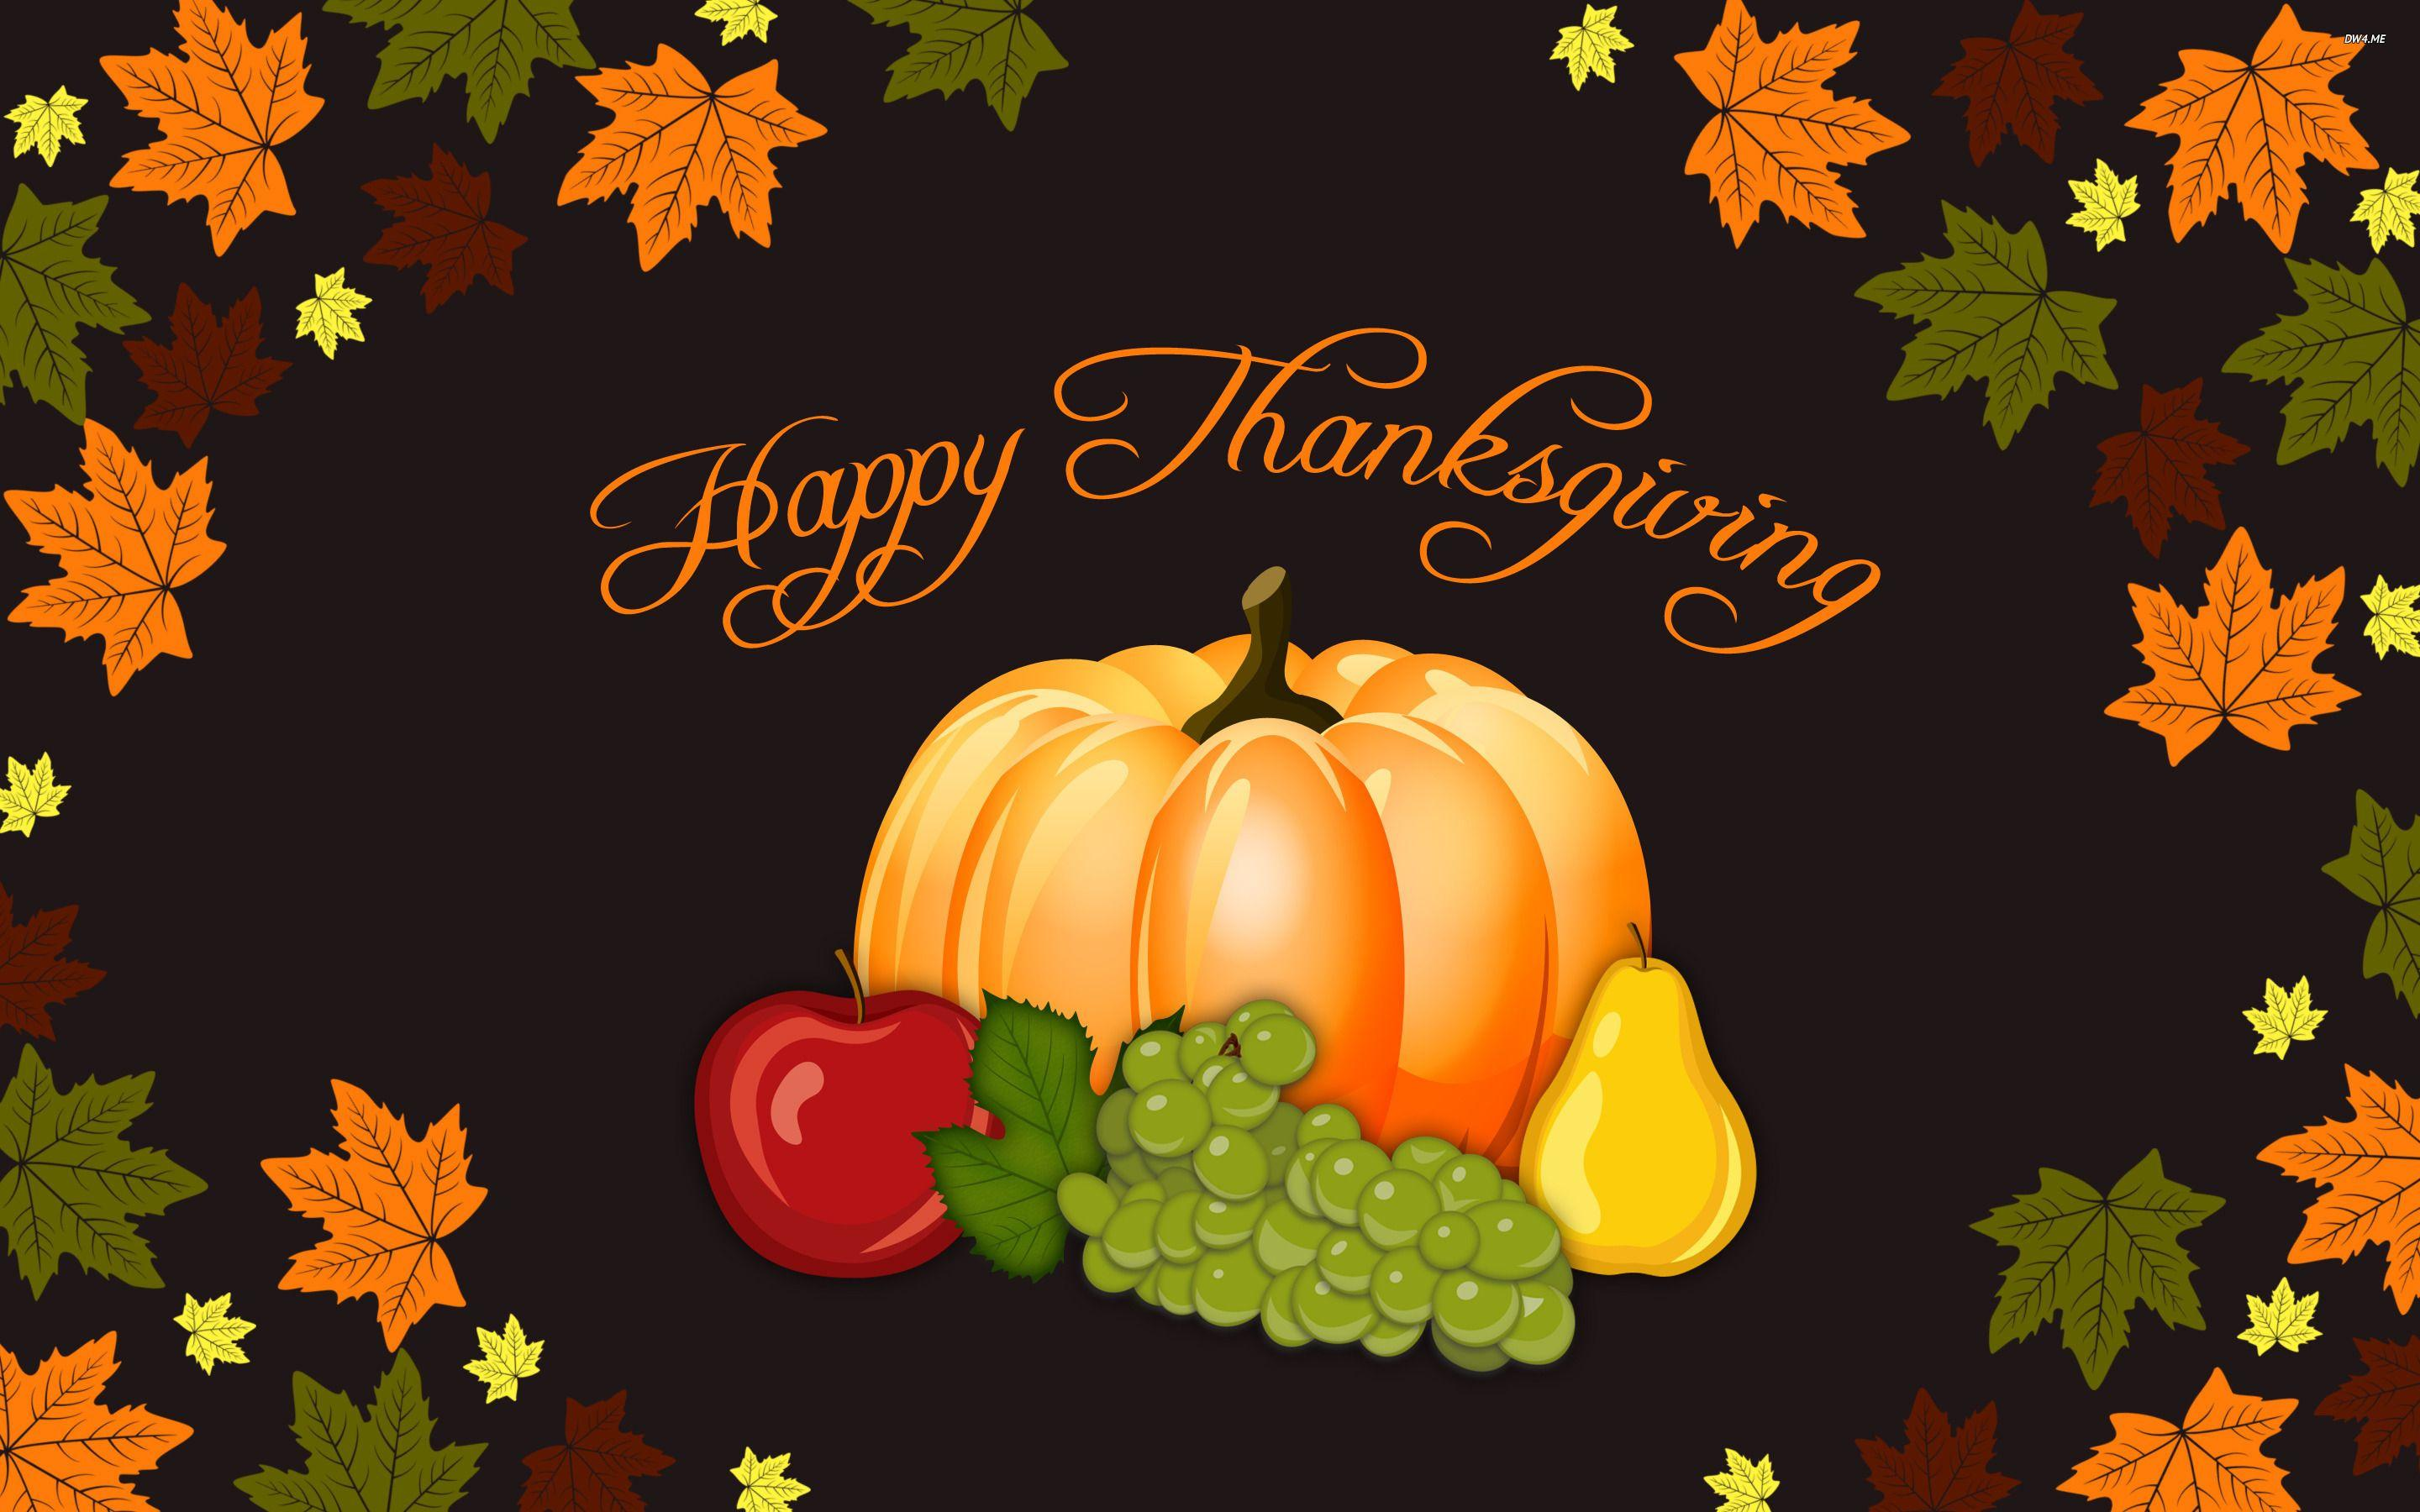 Happy Thanksgiving Live Desktop Wallpapers Free Download In HD